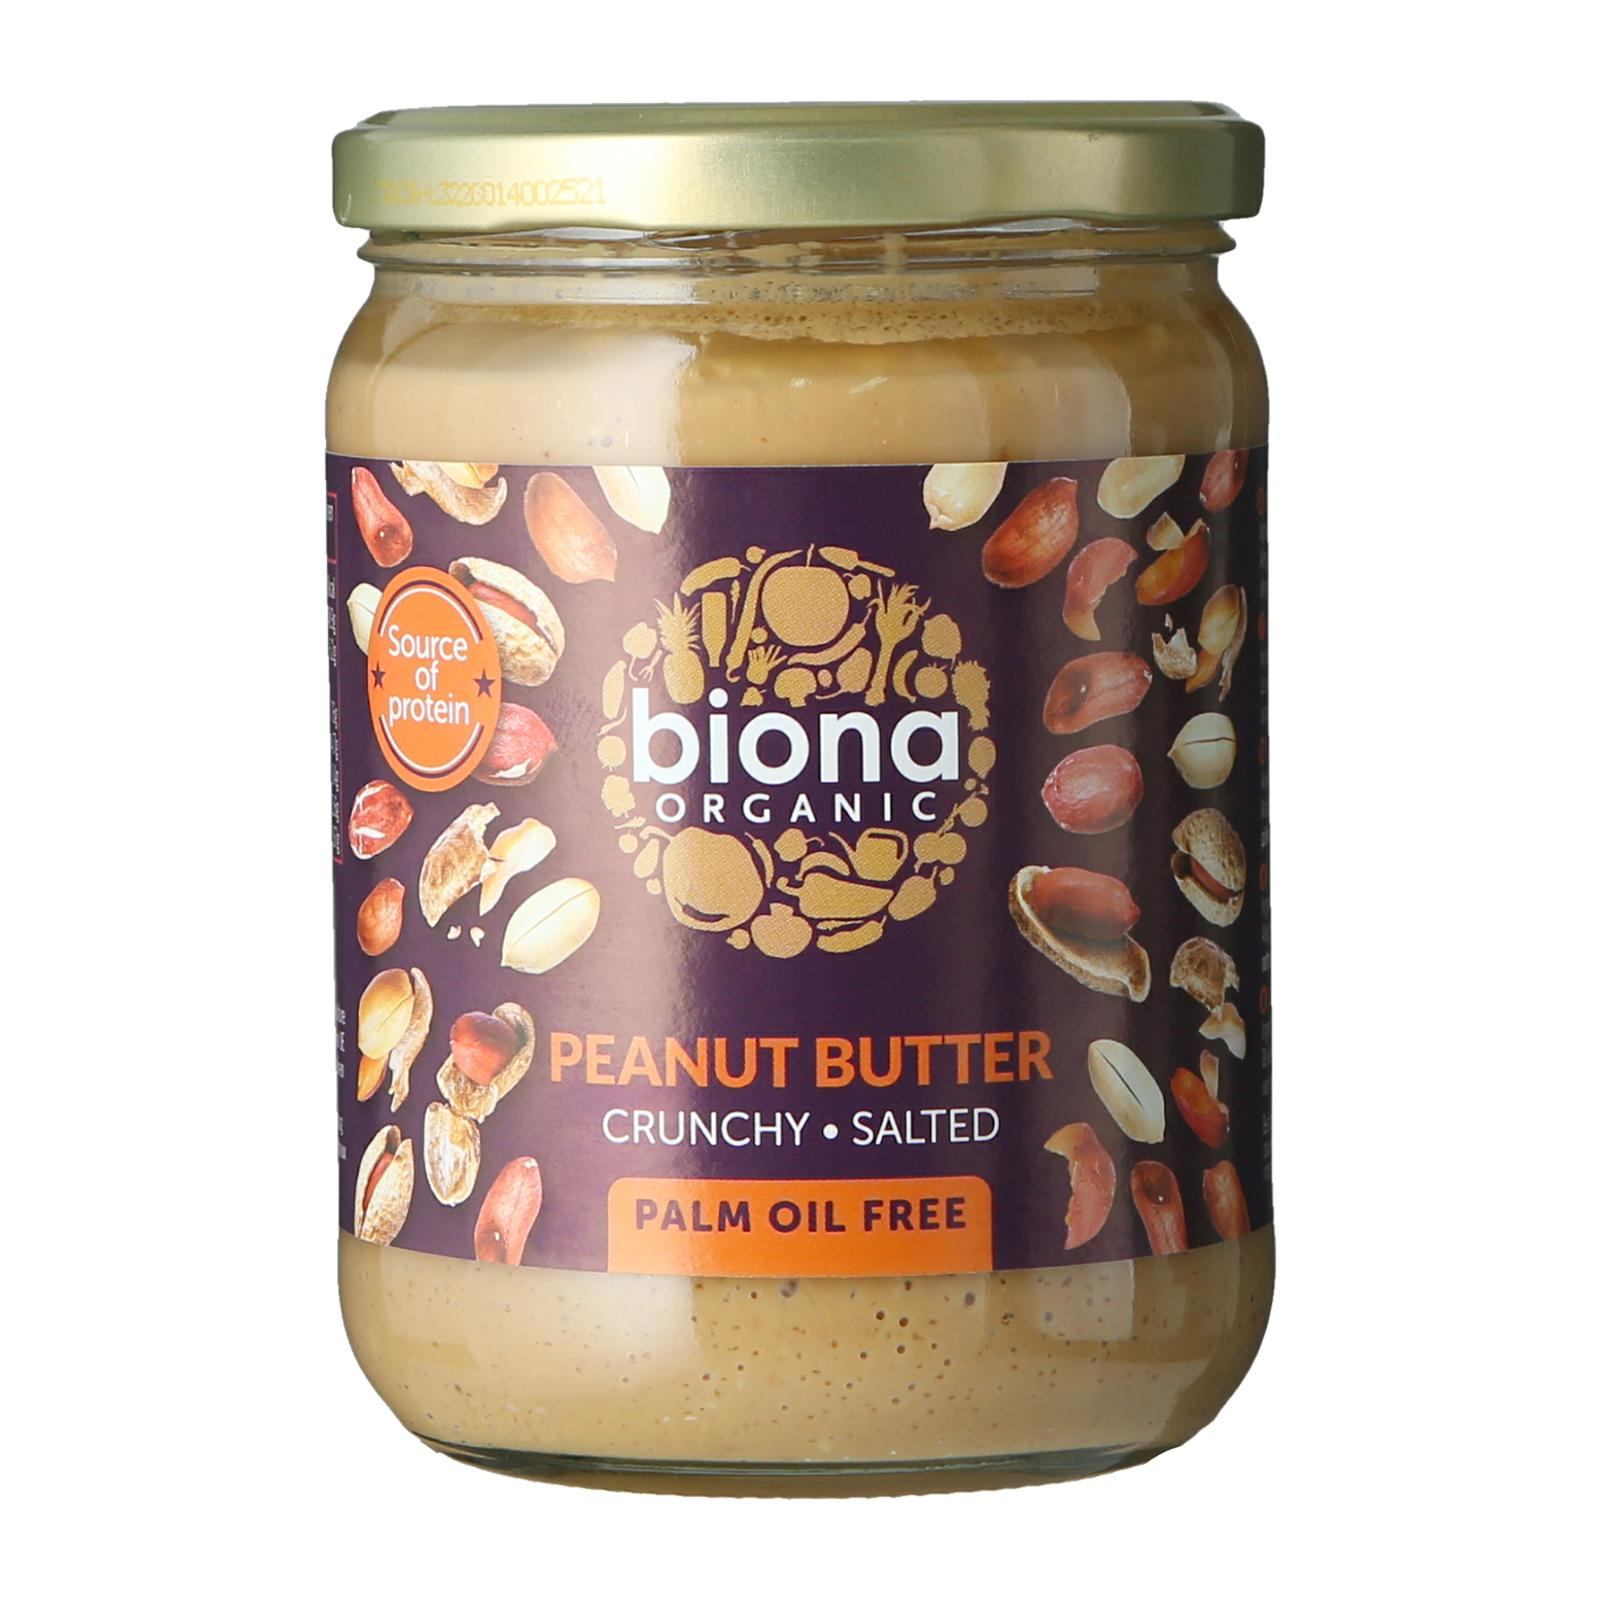 Biona Organic Peanut Butter Crunchy with Sea salt - By Wholesome Harvest